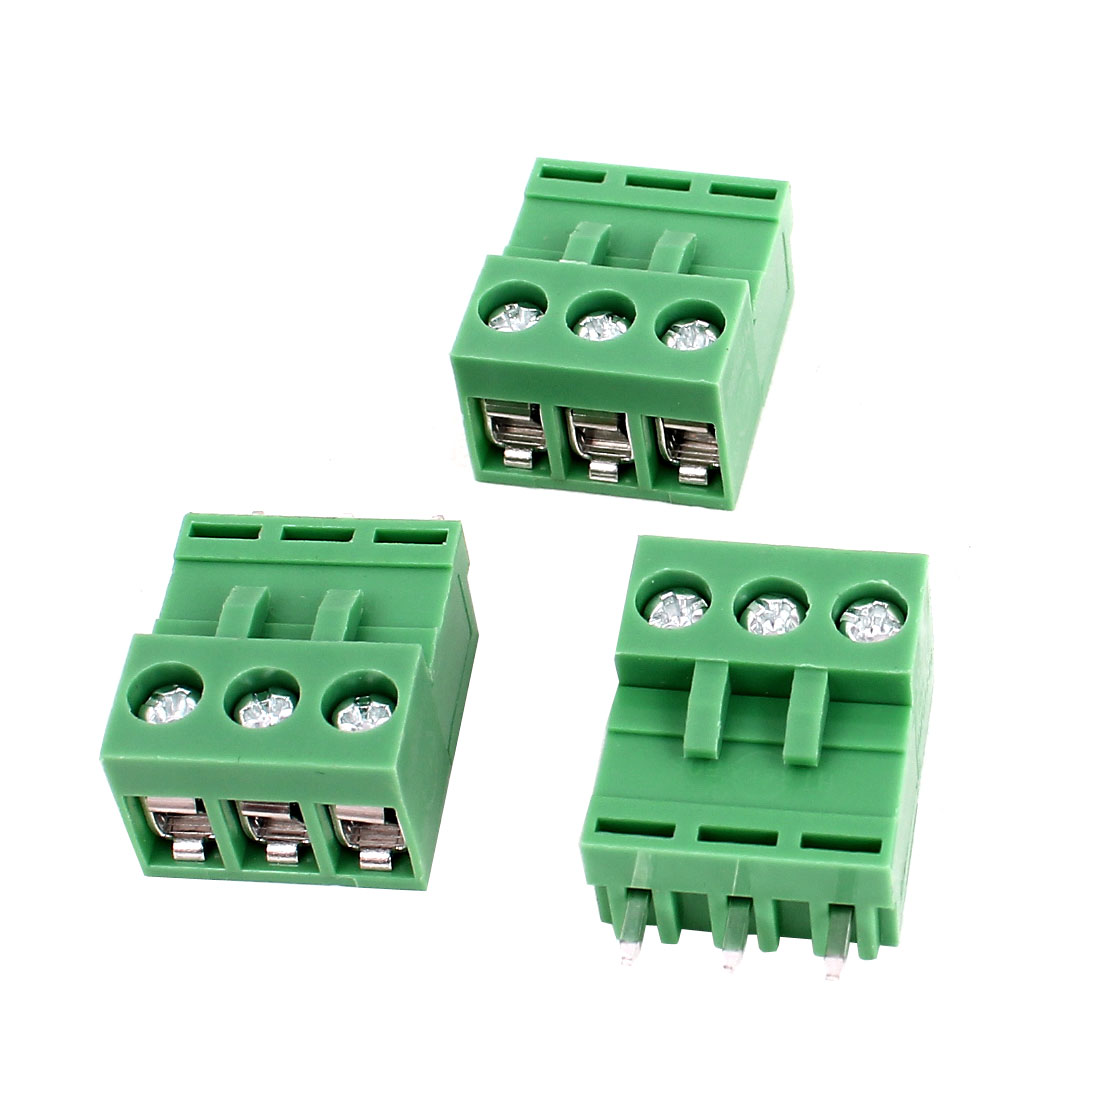 300V 10A 3P 5.08mm PCB Mount Pluggable Screw Terminal Block Straight Connector 3pcs Green